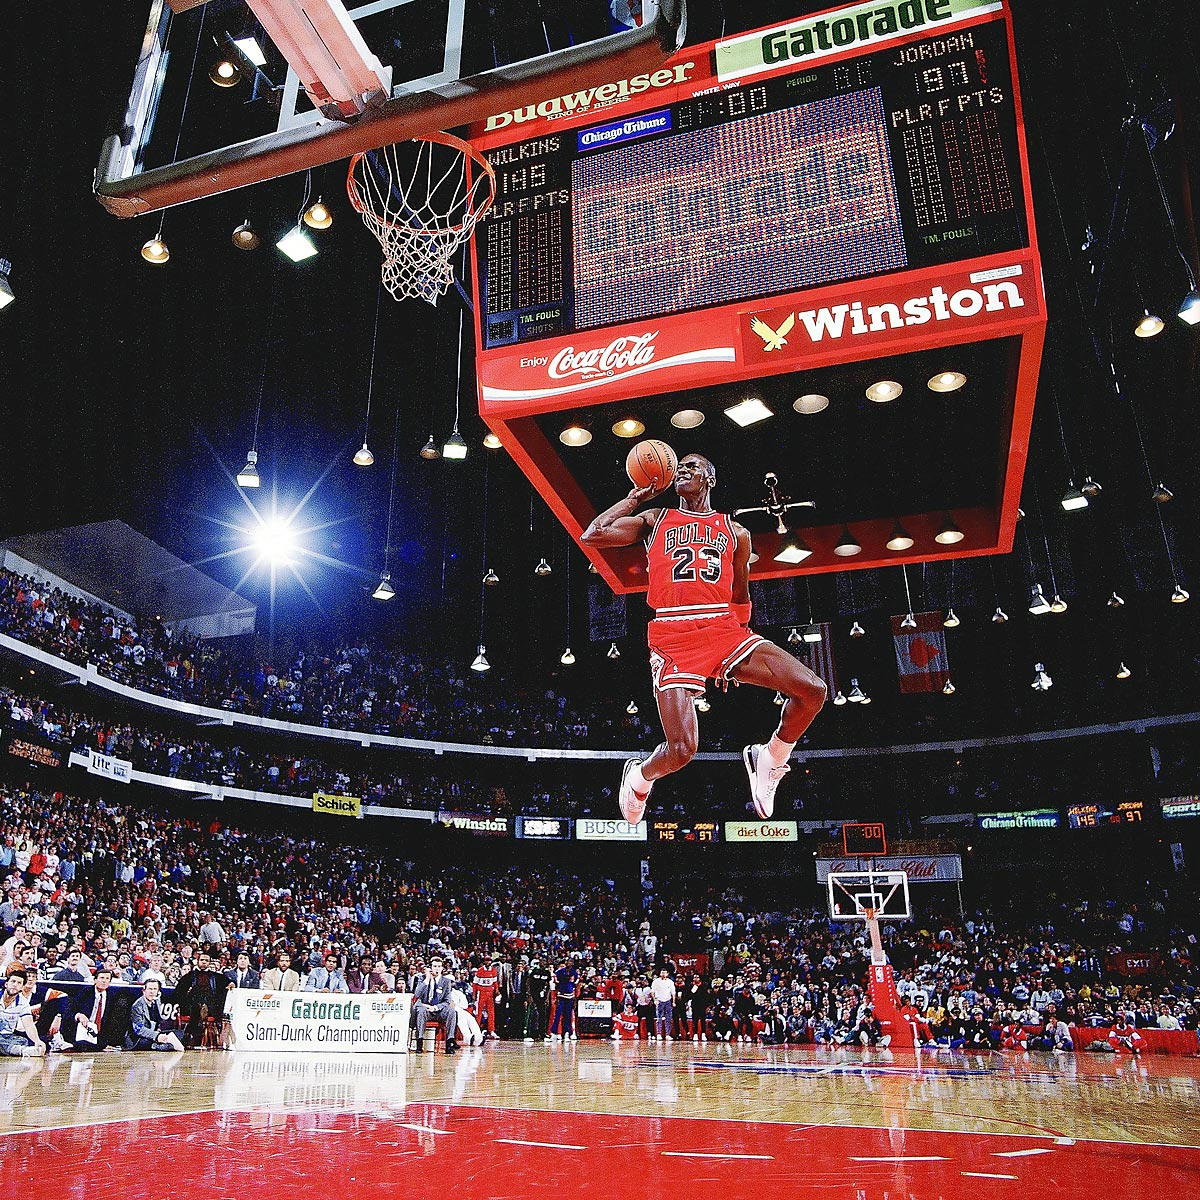 All-Star Weekend, Feb. 6, 1988 | Air Jordan takes off from the free throw line and soars to a perfect score of 50 to defeat Dominique Wilkins in the finals of the Slam Dunk Contest. It was the second straight title for the Bulls star, and the '88 contest is widely considered the best ever because of the duel between Jordan and Wilkins.